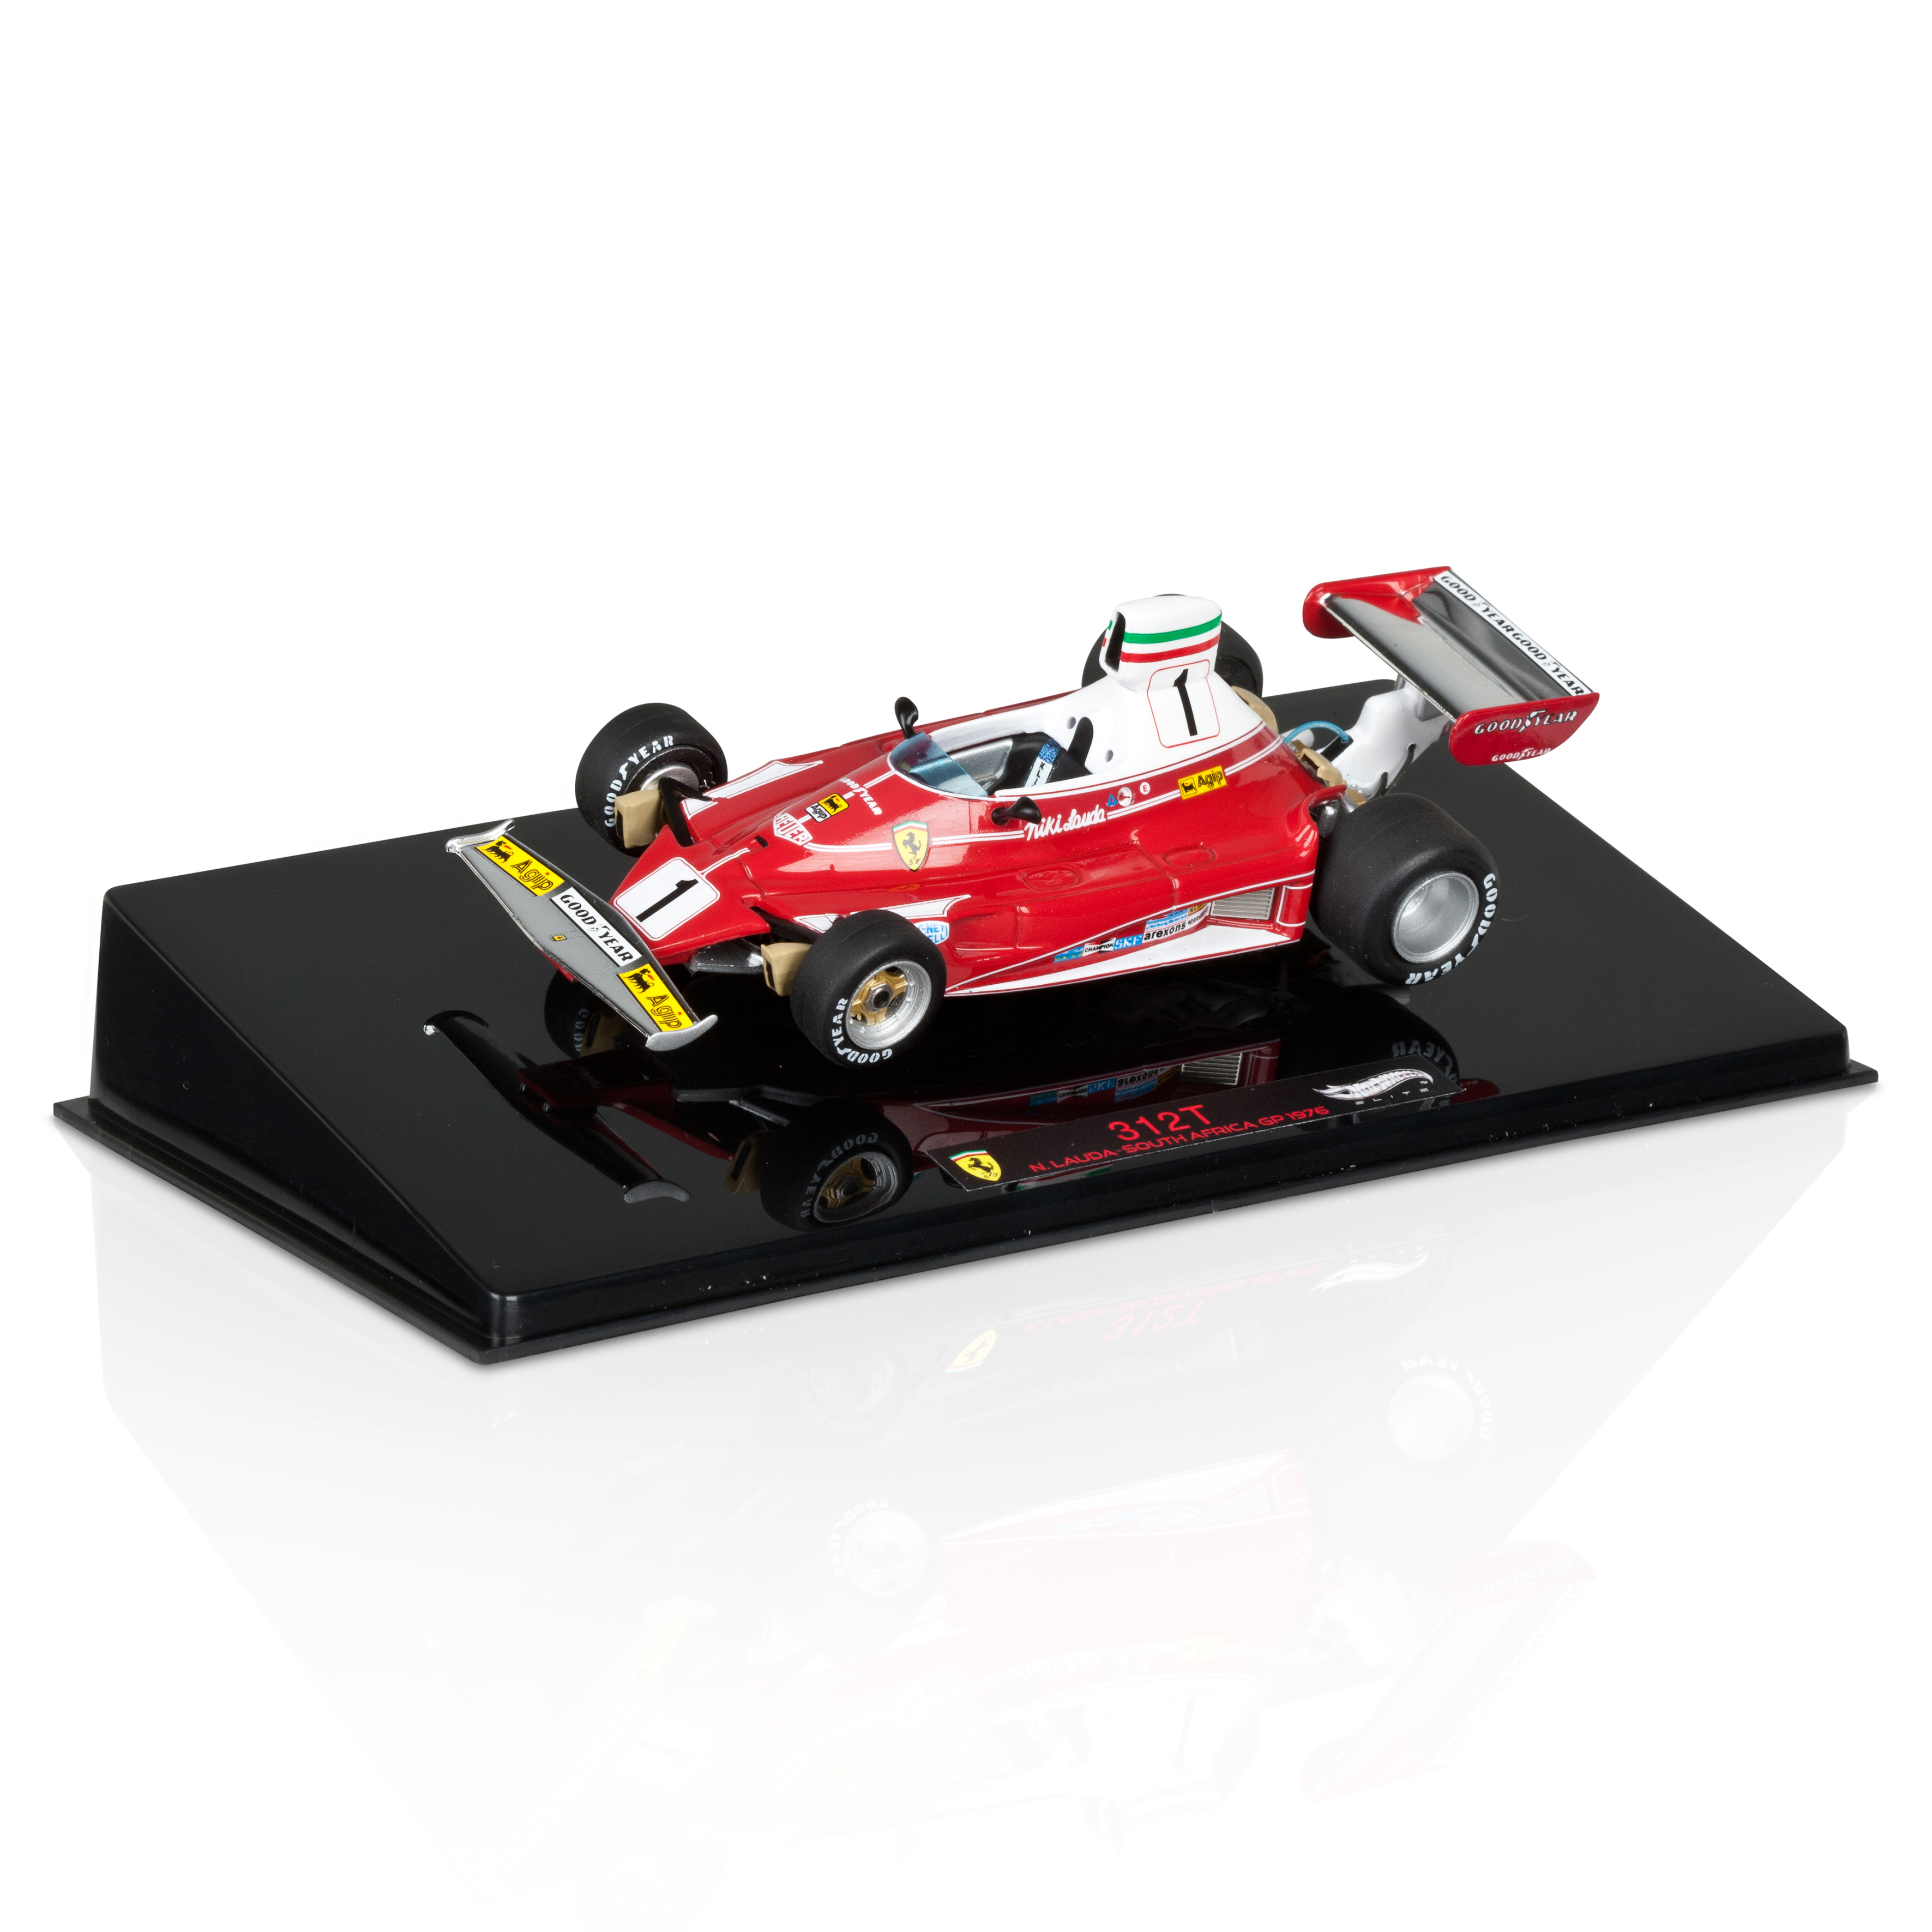 Niki Lauda Ferrari 312T South African GP 1976 1:43 Scale